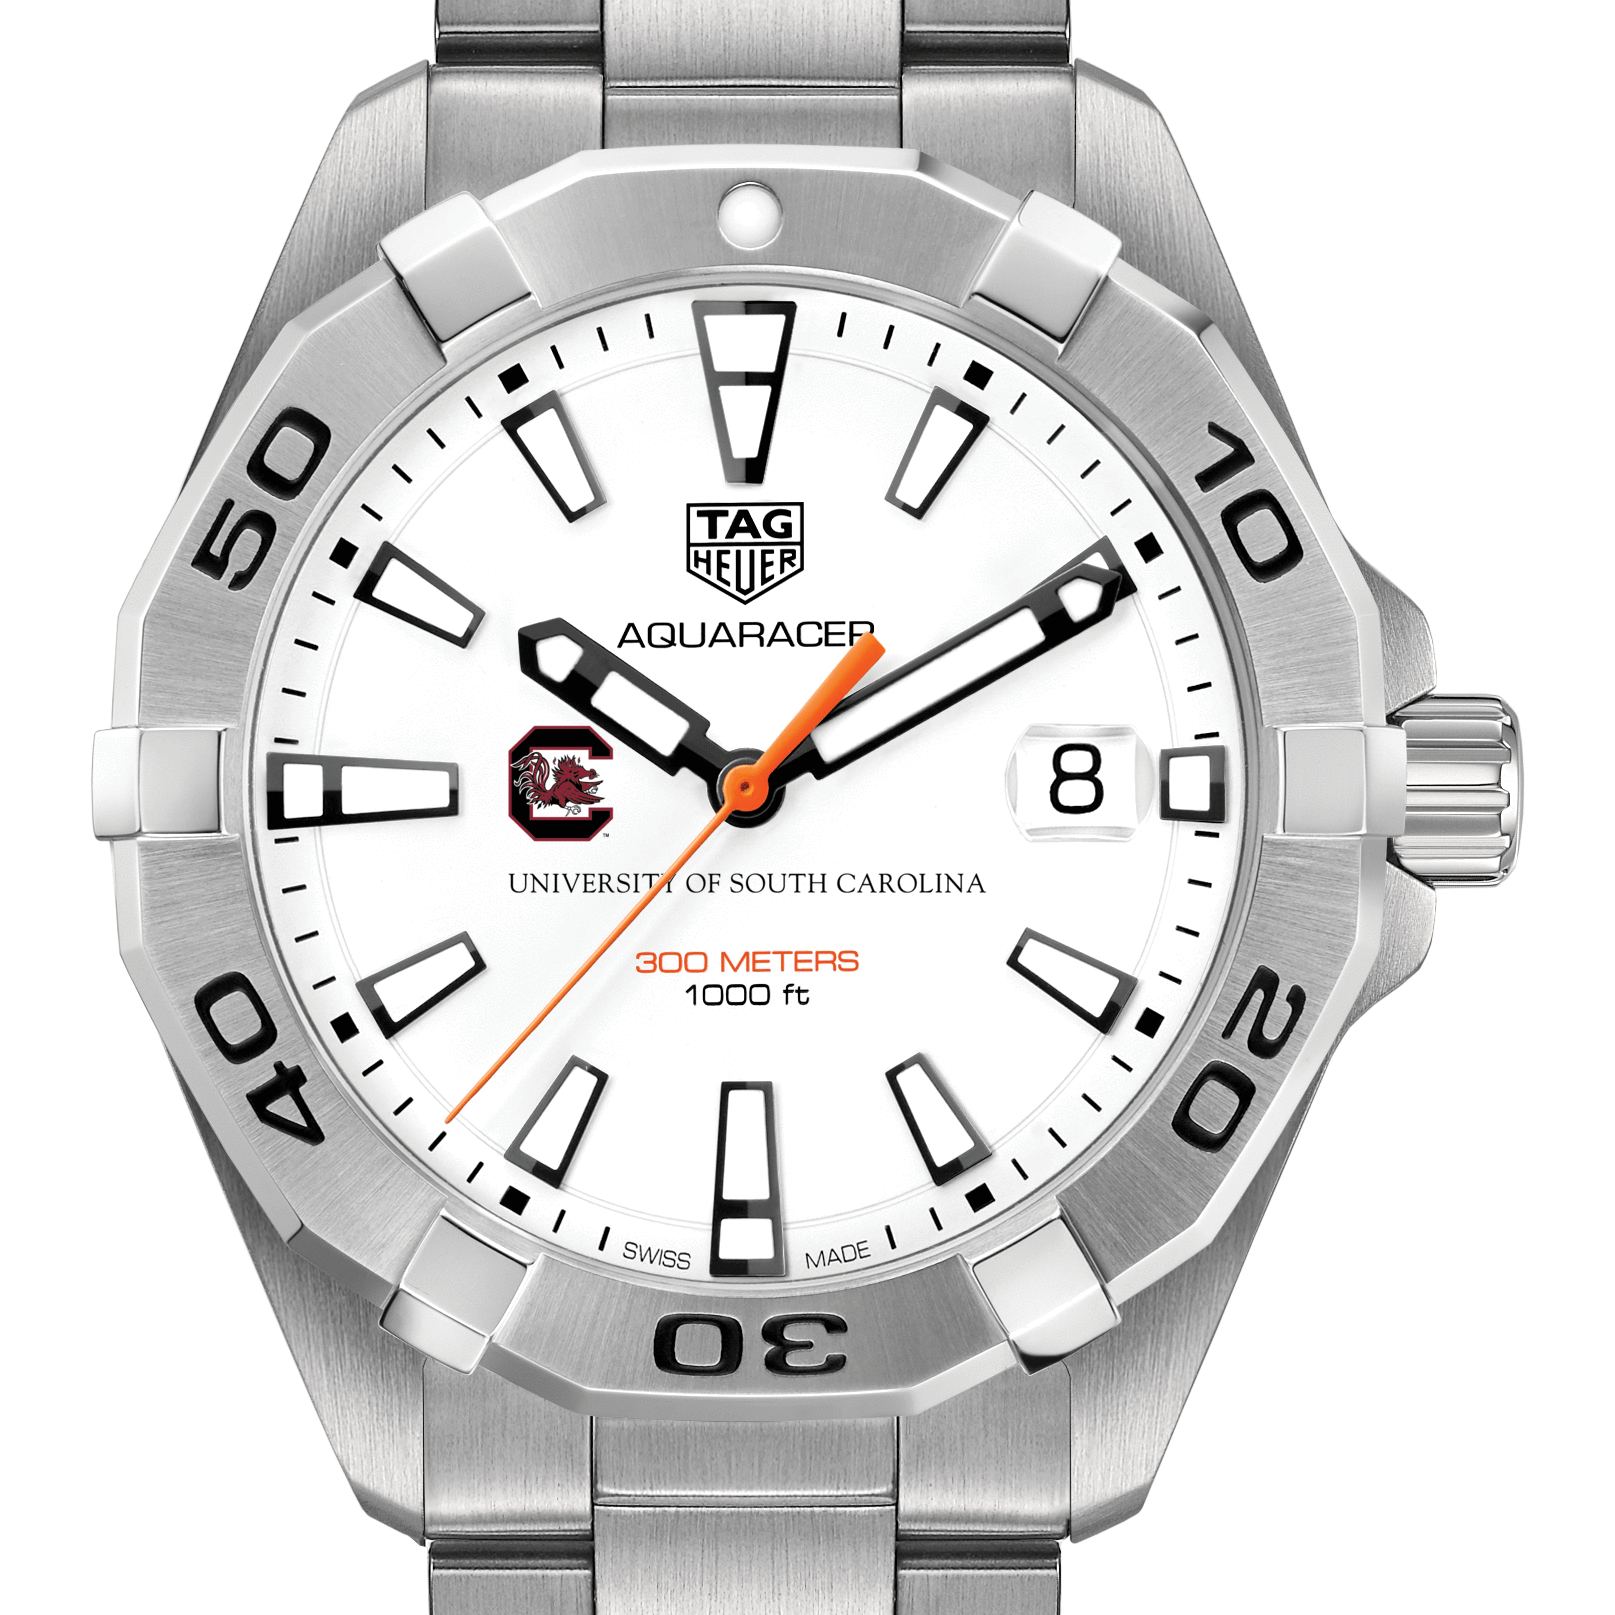 South Carolina Men's TAG Heuer Steel Aquaracer